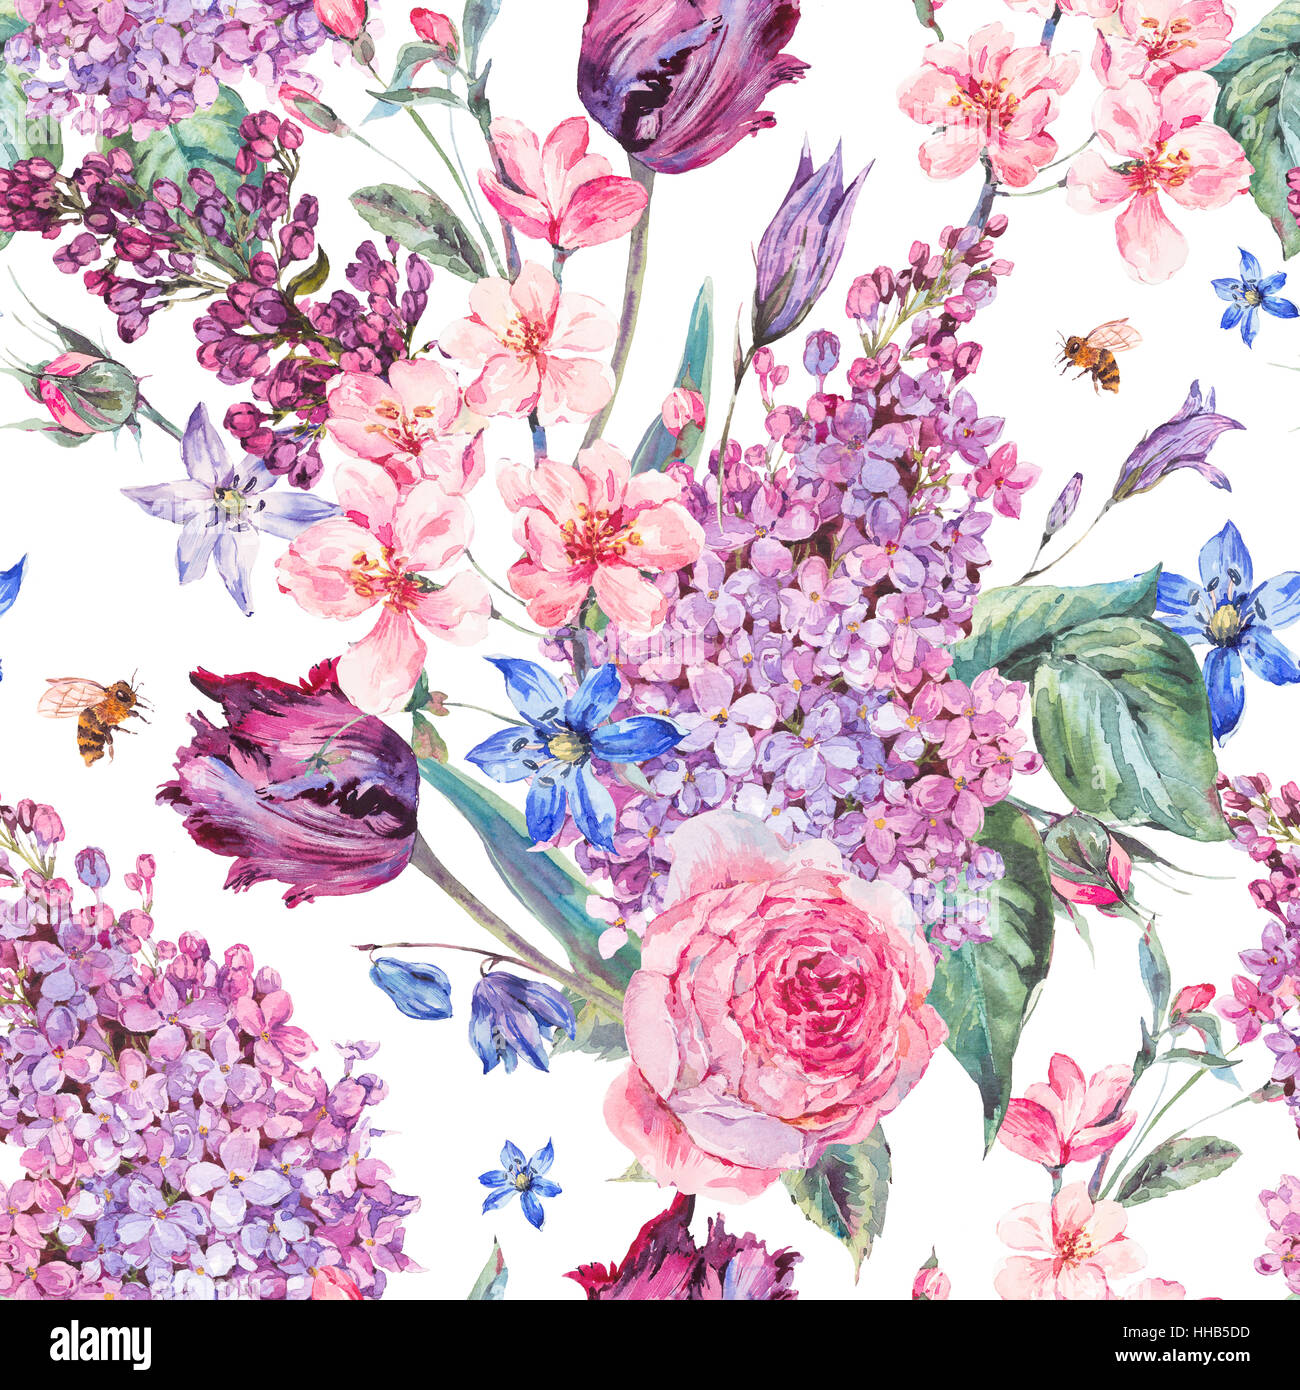 Watercolor Spring Seamless Background With Pink Flowers Stock Photo